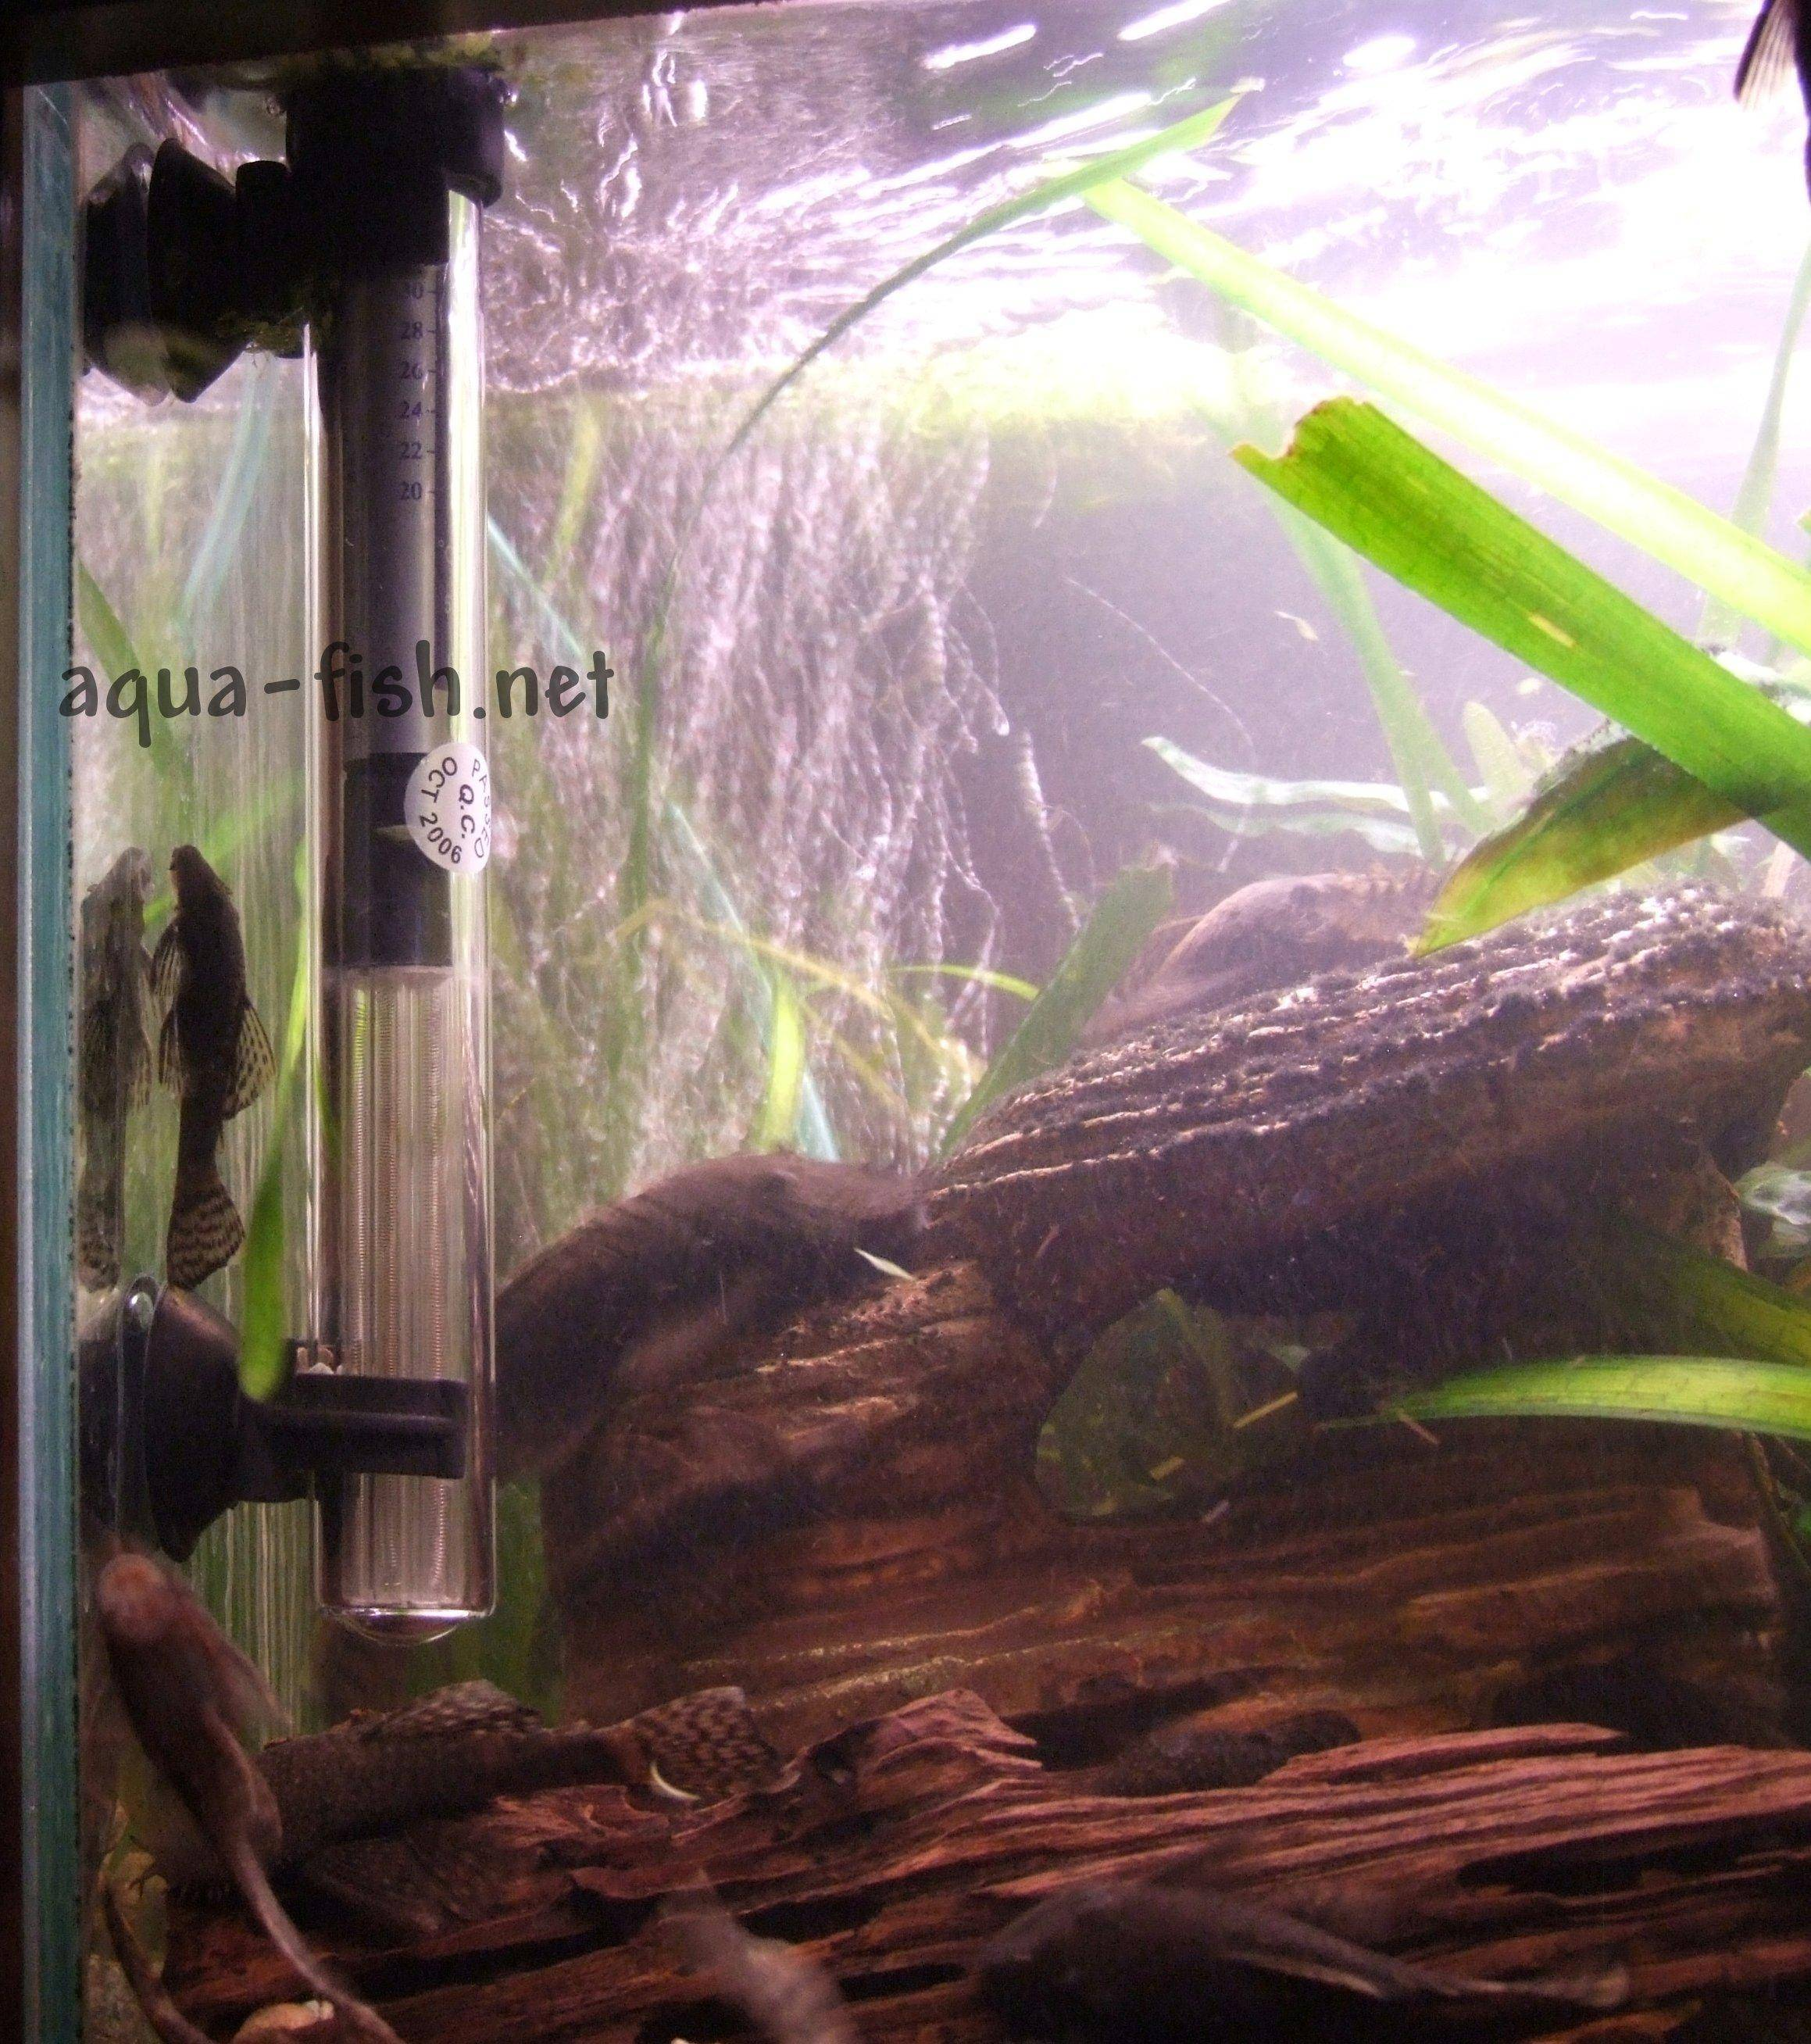 Aquarium water heaters provide heating to the fish tank to maintain good water temperatures for the fish. Learn tips for buying a the right tropical aquarium fish tank